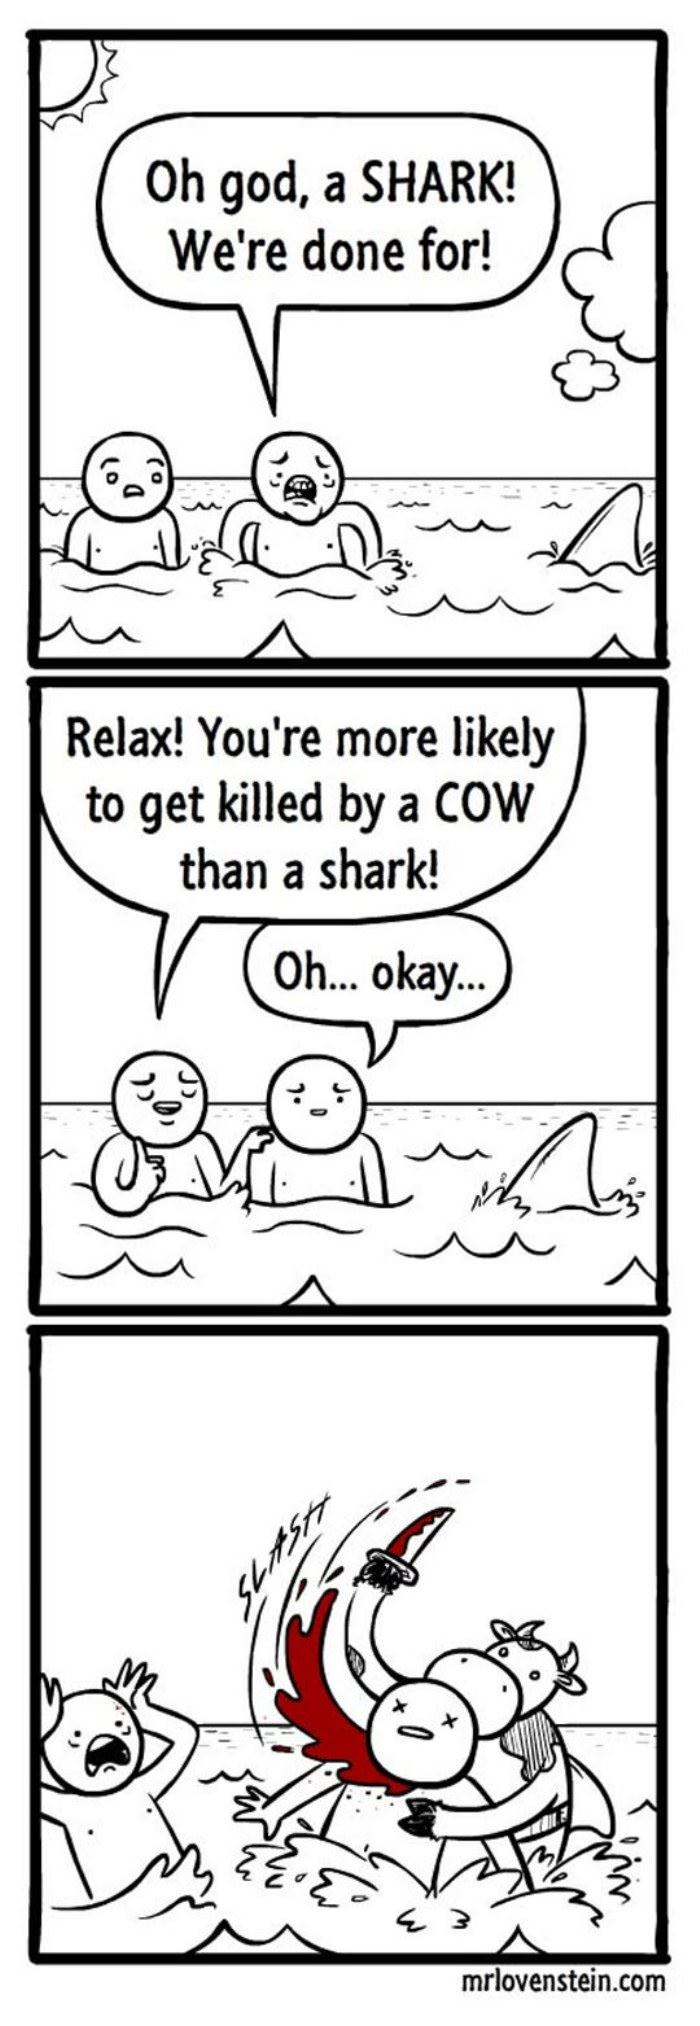 a shark funny picture